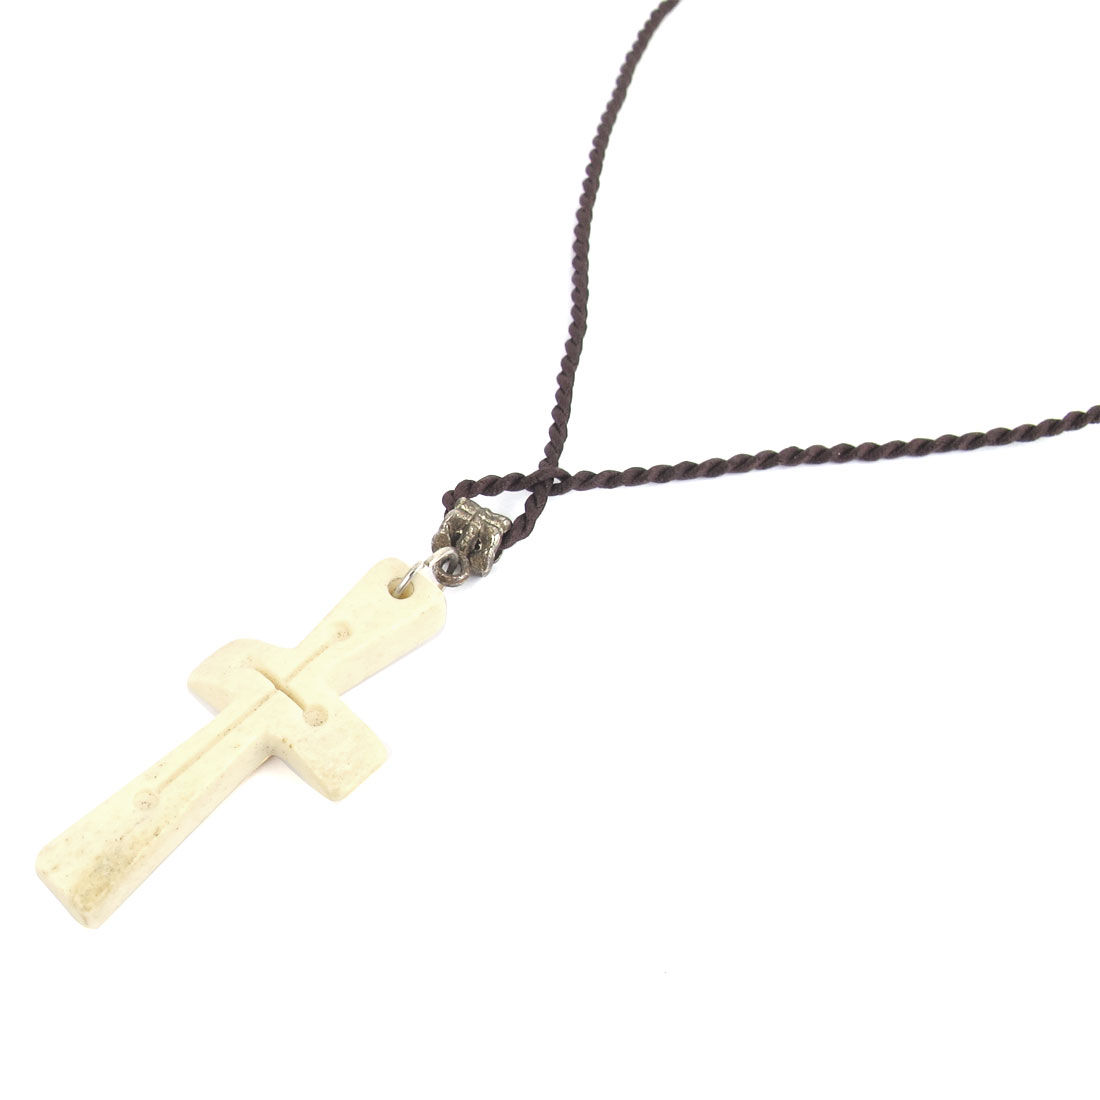 Plastic Cross Shape Pendant Adjustable Neck Cord Cool Necklace for Men